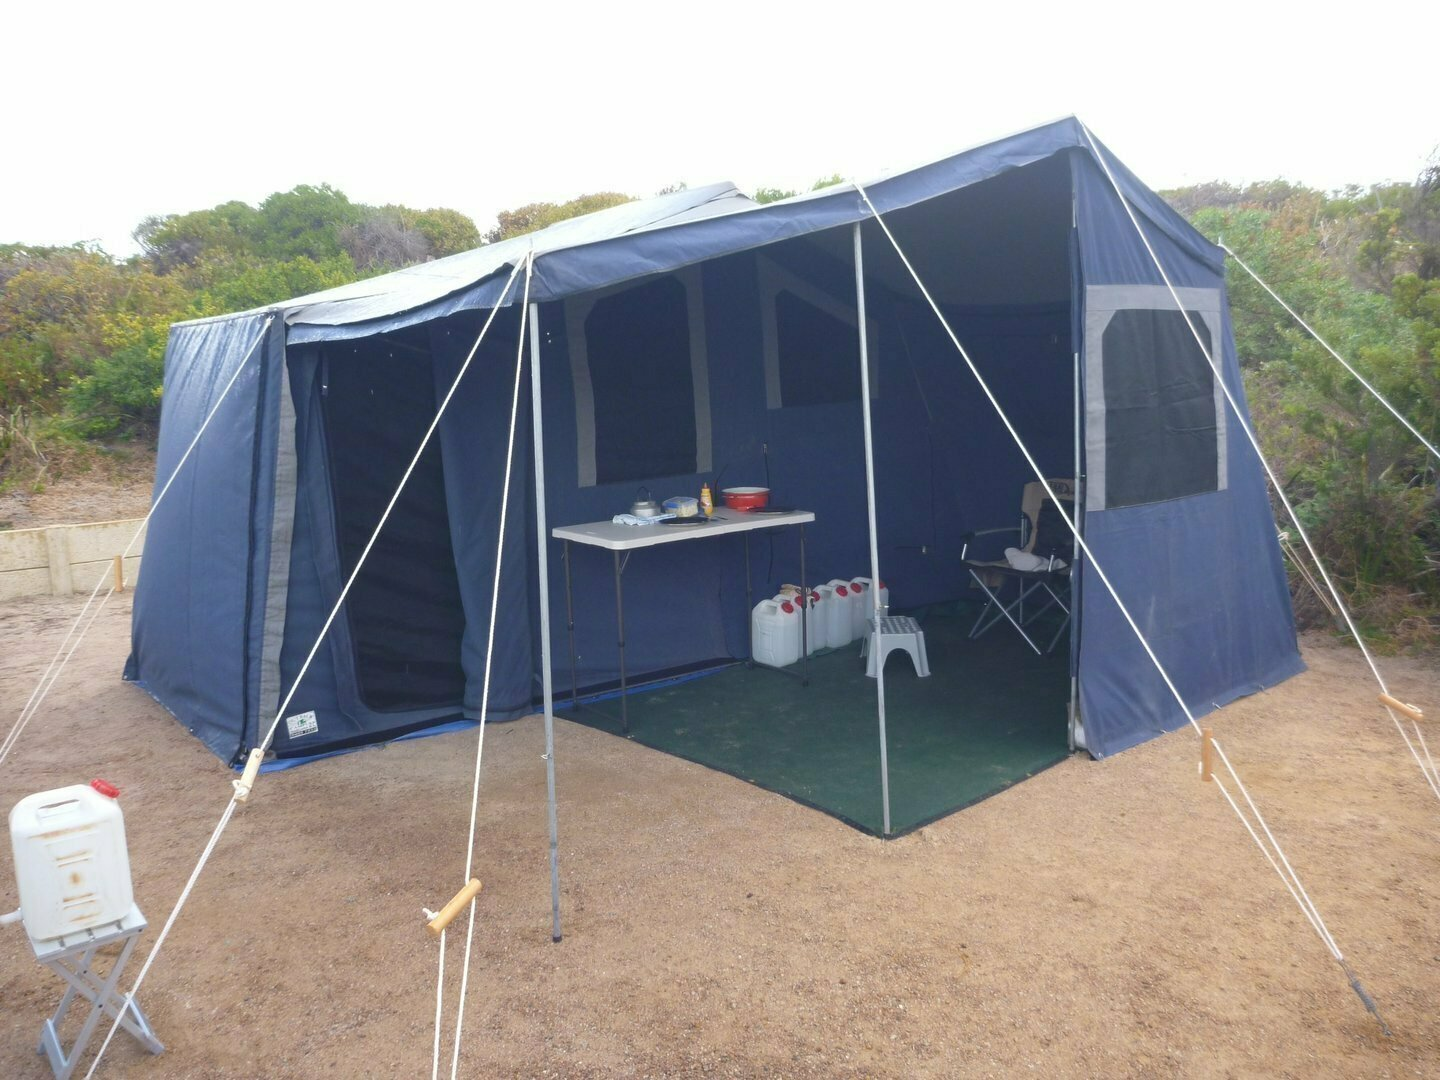 Soft-floor Camper Trailer for Hire in West Busselton WA from